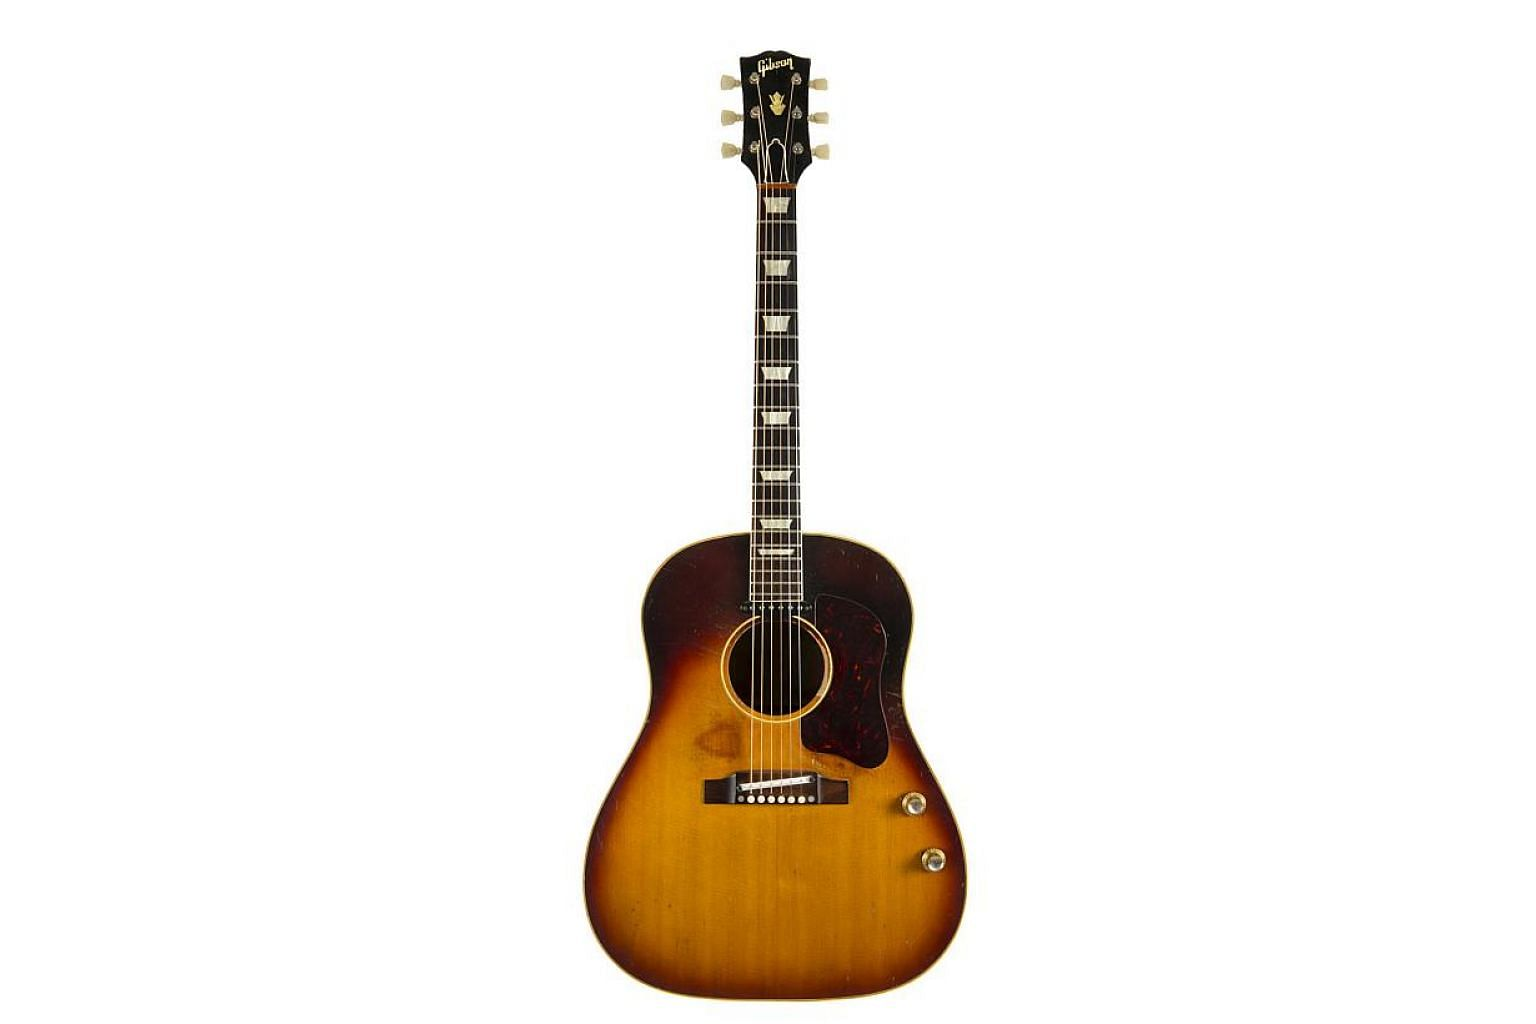 The jumbo J-160E Gibson Acoustic guitar, purchased by Lennon in Liverpool, is expected to fetch between US$600,000 and US$800,000 (S$1,079,000) when it goes on sale on Nov 6 at an auction of rock'n'roll memorabilia in Beverly Hills. -- PHOTO: REUTERS